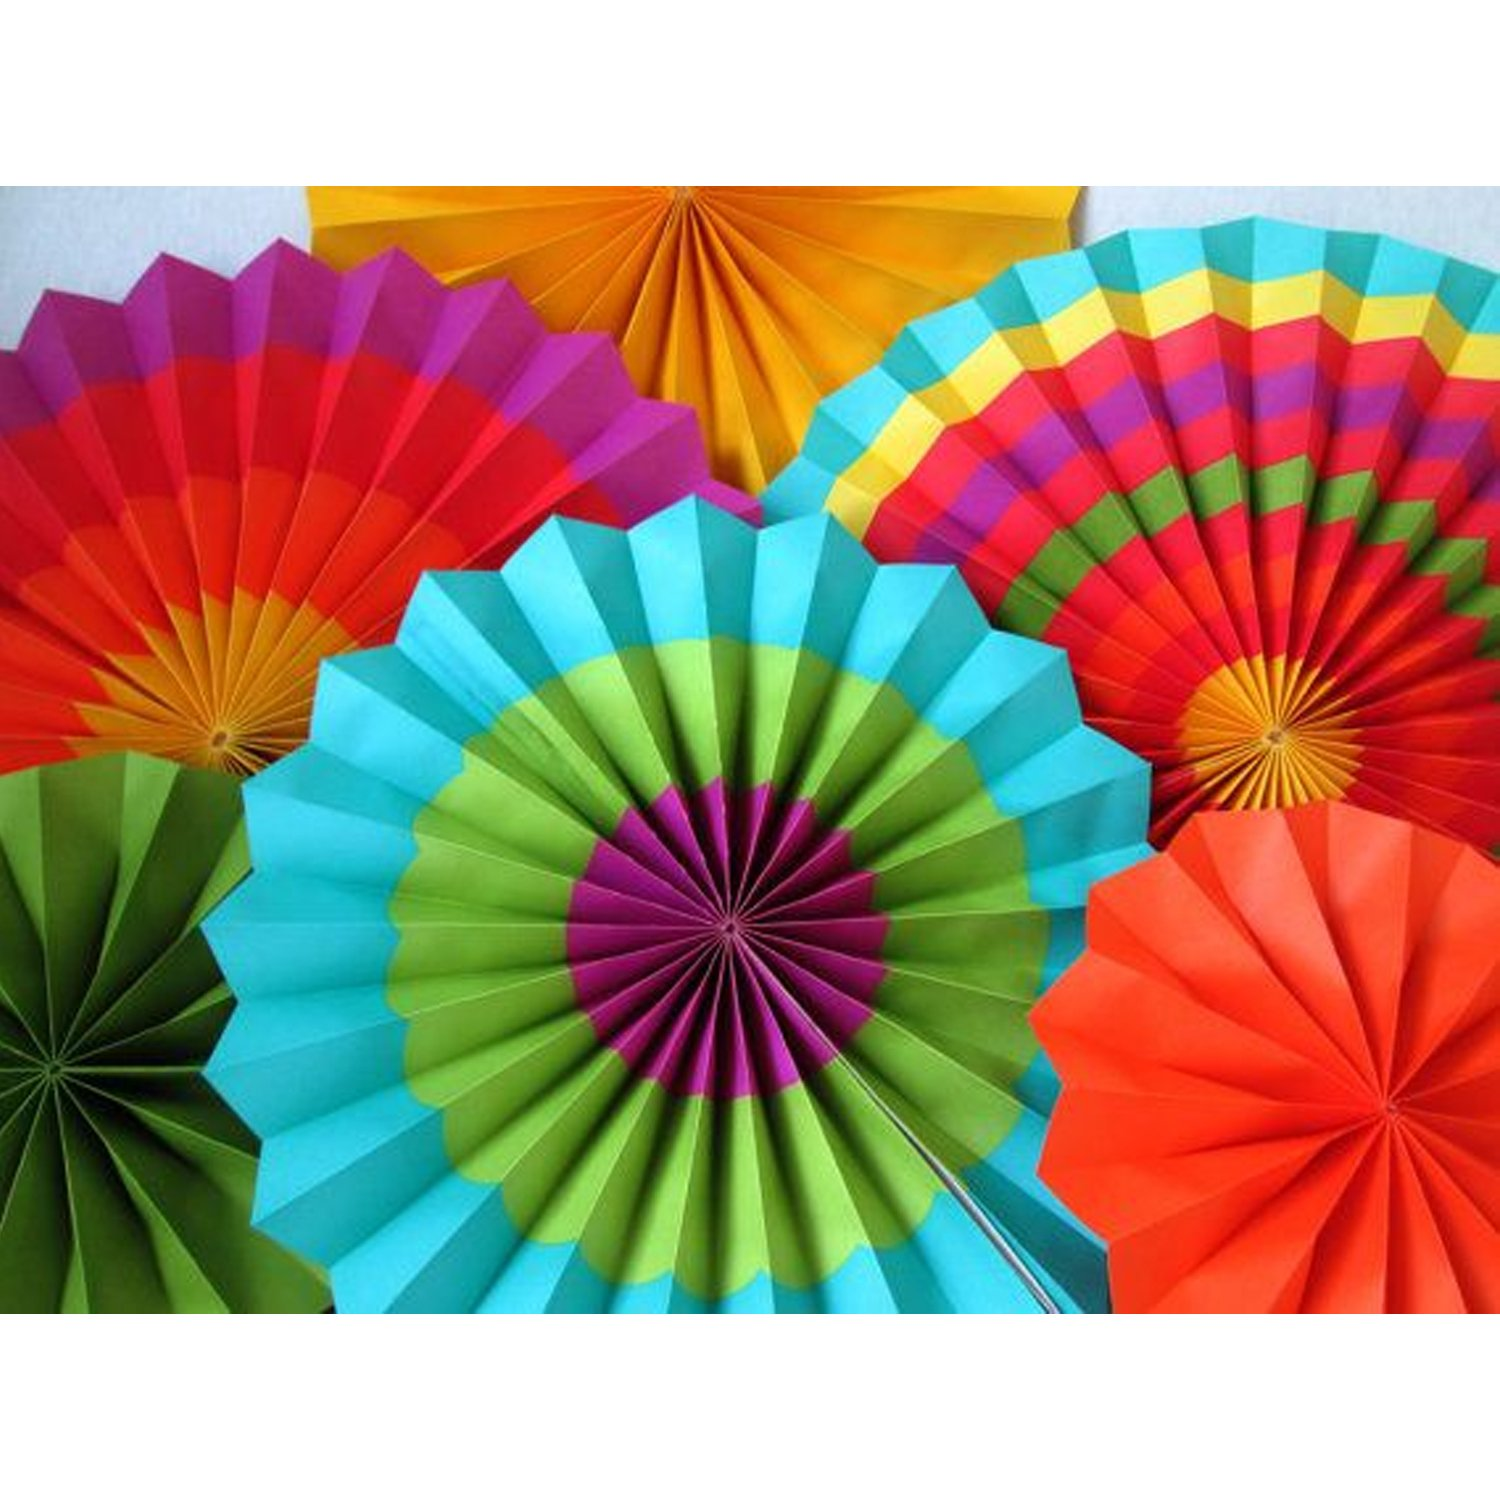 Adorox Set of 12 Vibrant Bright Colors Hanging Paper Fans Rosettes Party Decoration for Holidays 8'' 12'' 16'' Various Sizes Fiesta (2 pack) …